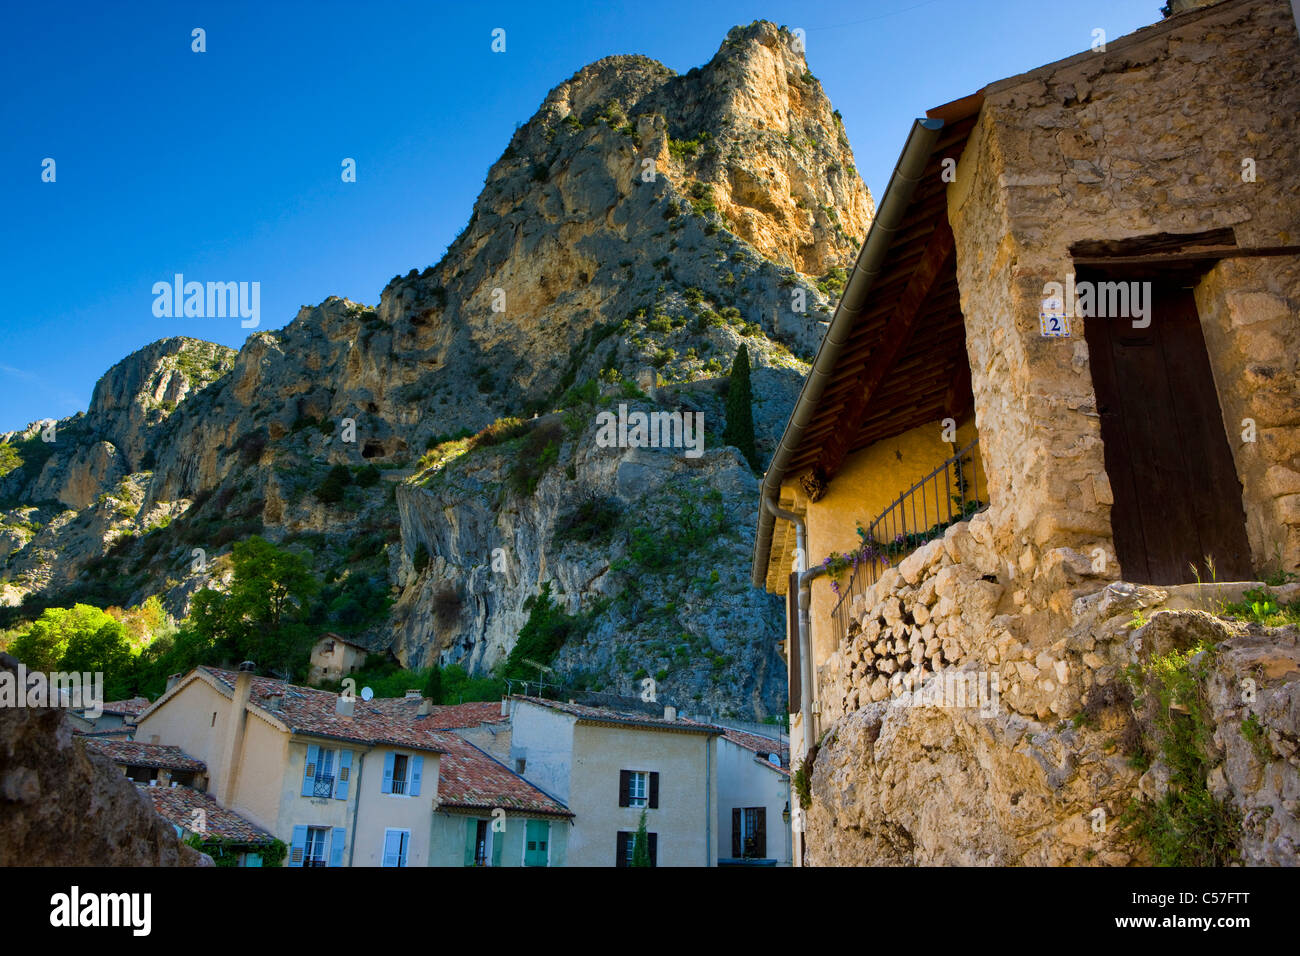 Moustiers-Sainte-Marie, France, Europe, Provence, Alpes-de-Haute-Provence, village, houses, homes, mountains, rocks, Stock Photo